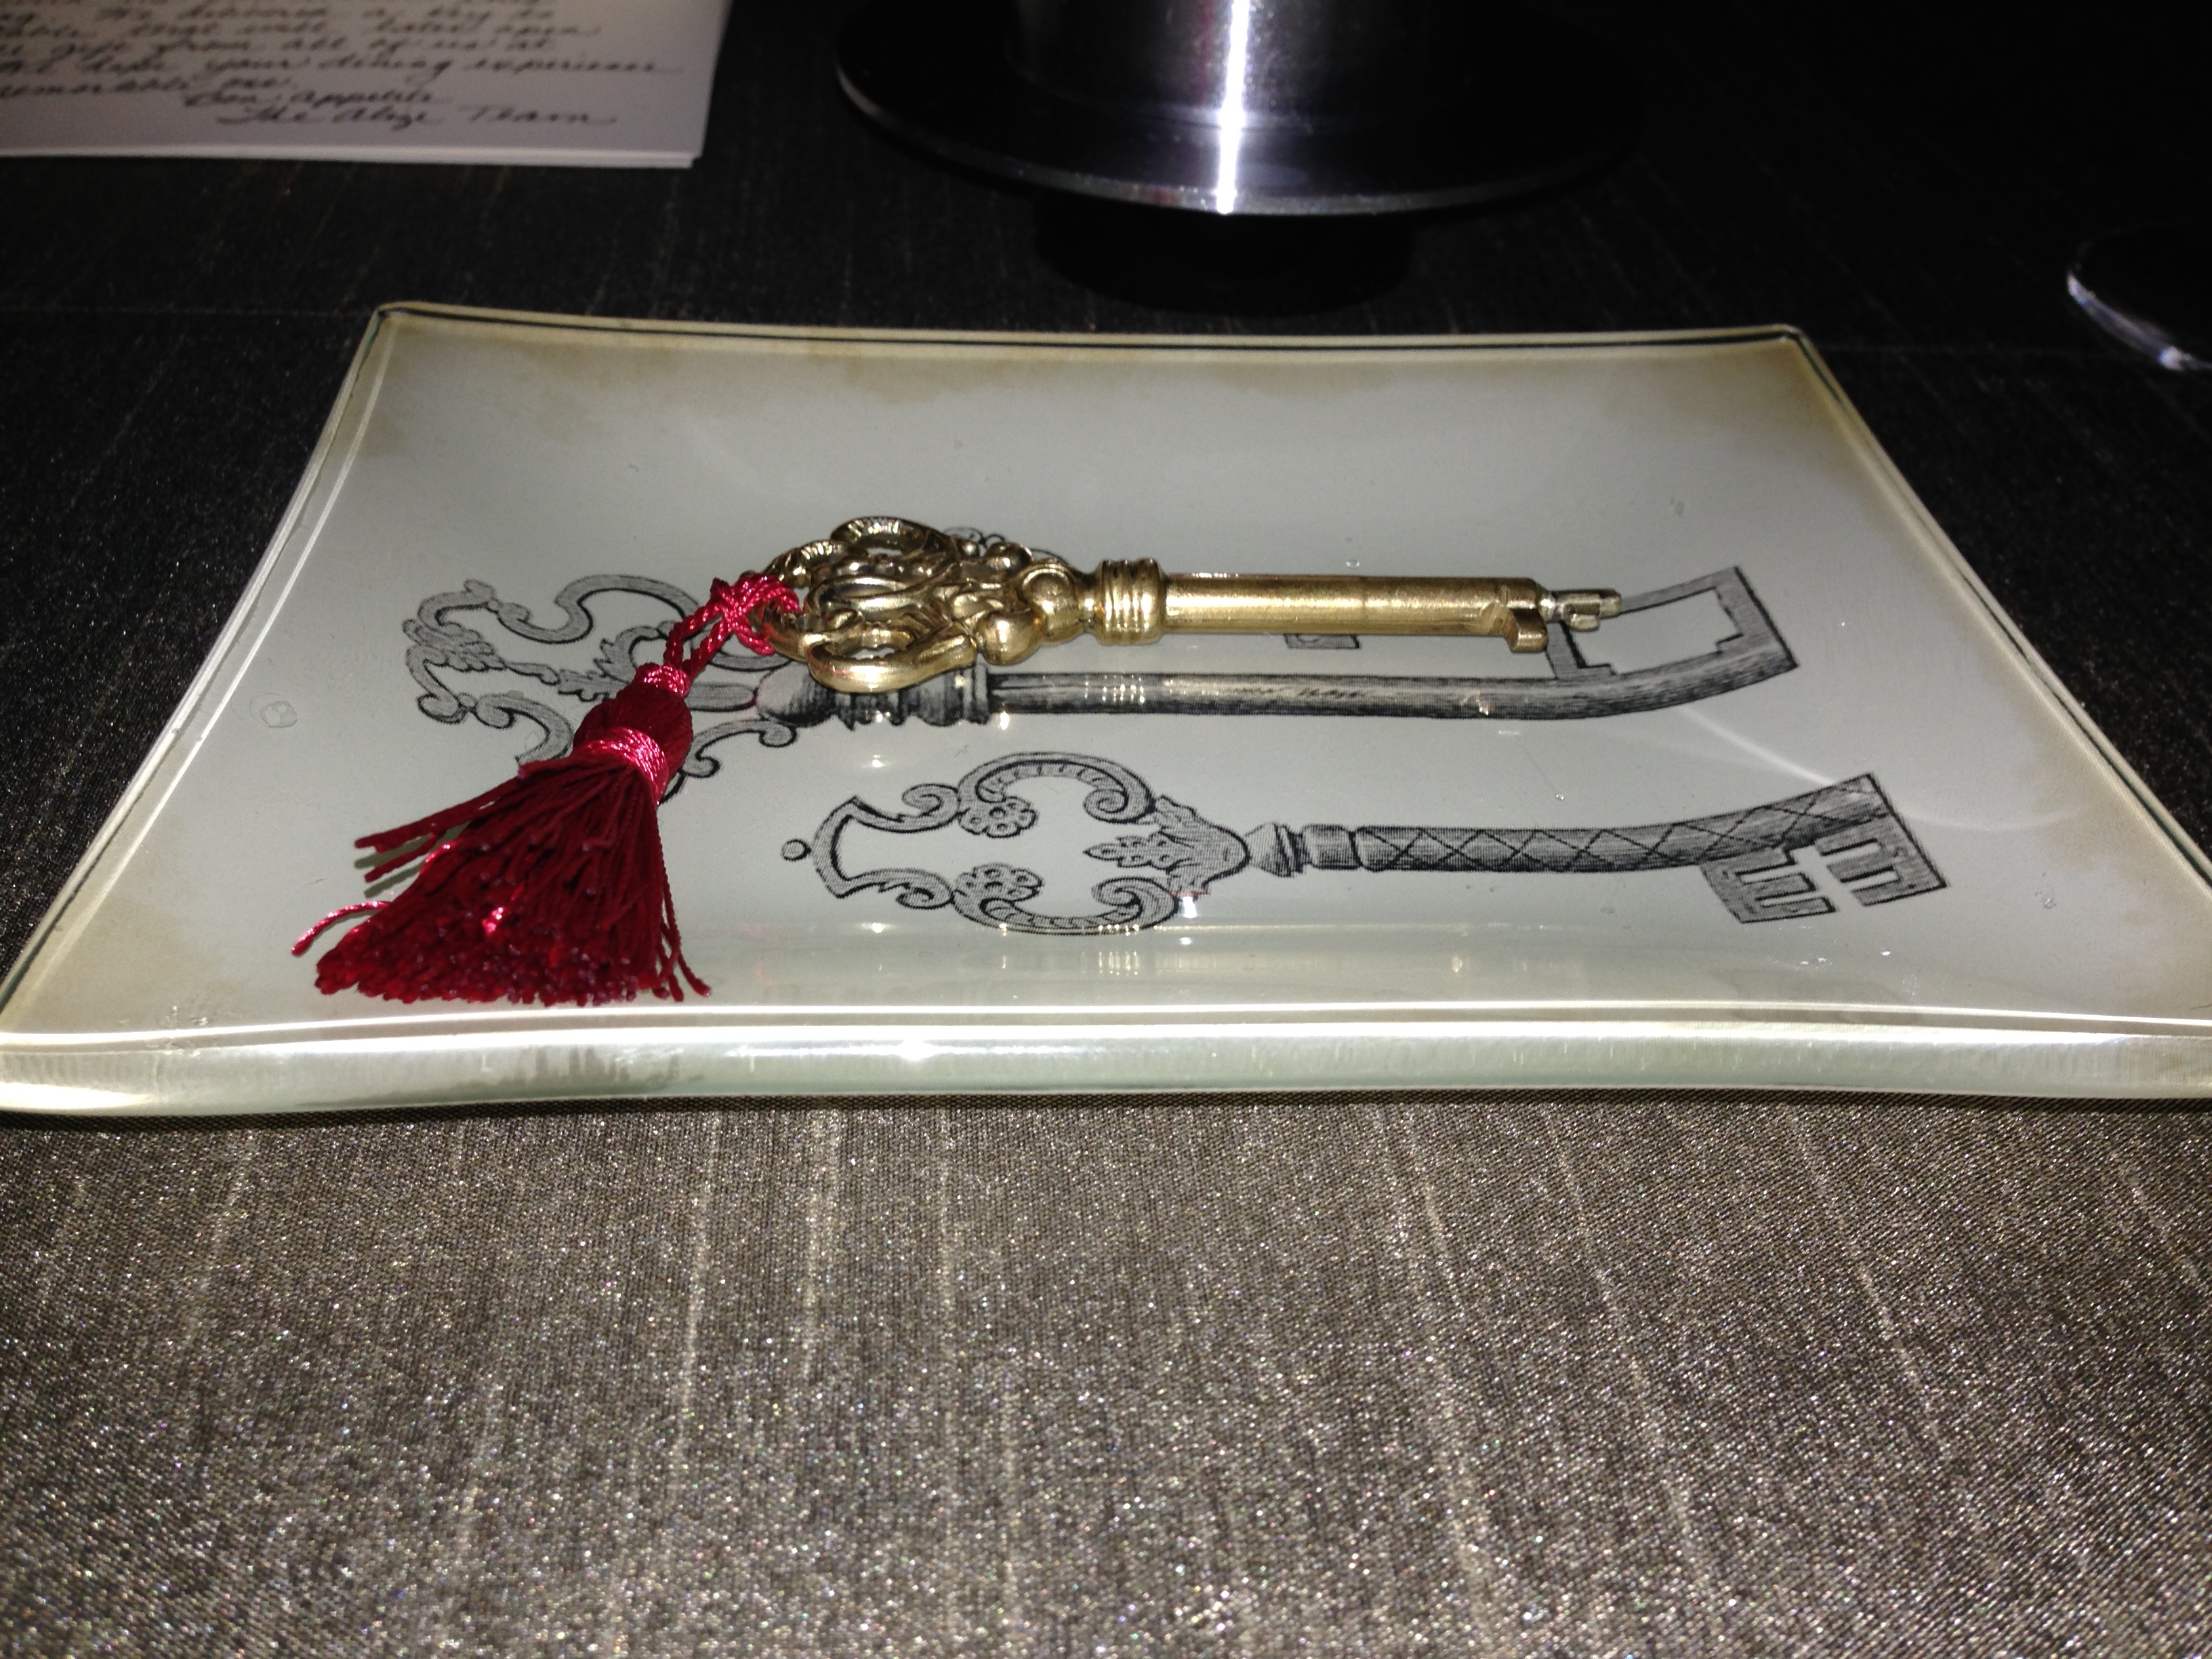 The key you are presented at Alizé for this special occasion package.